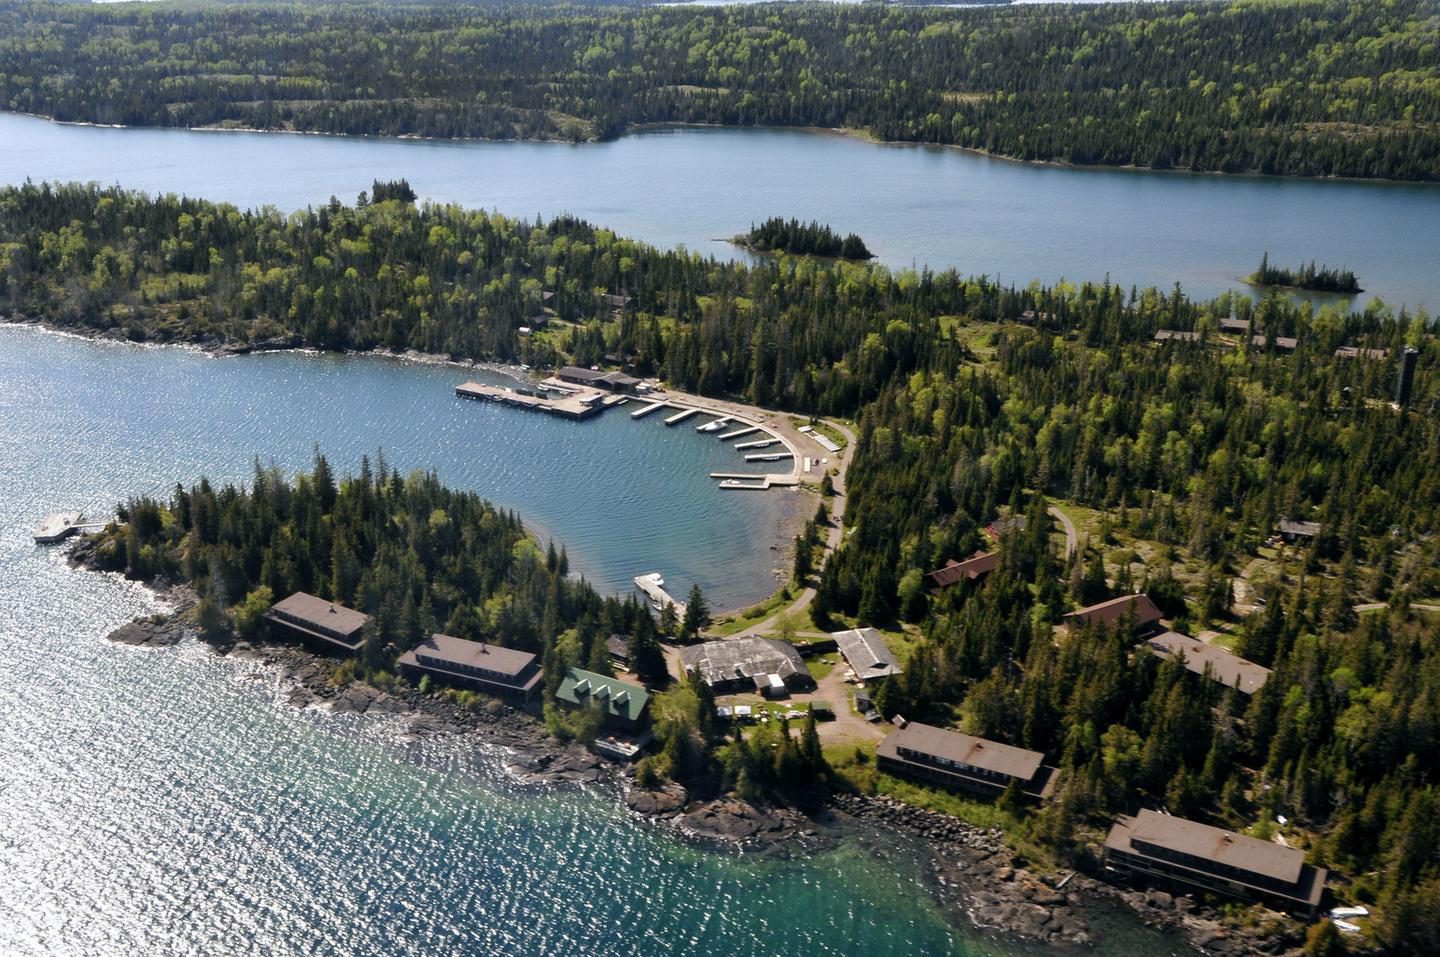 Aerial View of Rock HarborThe Rock Harbor Lodge provides amenities and lodging to the Rock Harbor area.